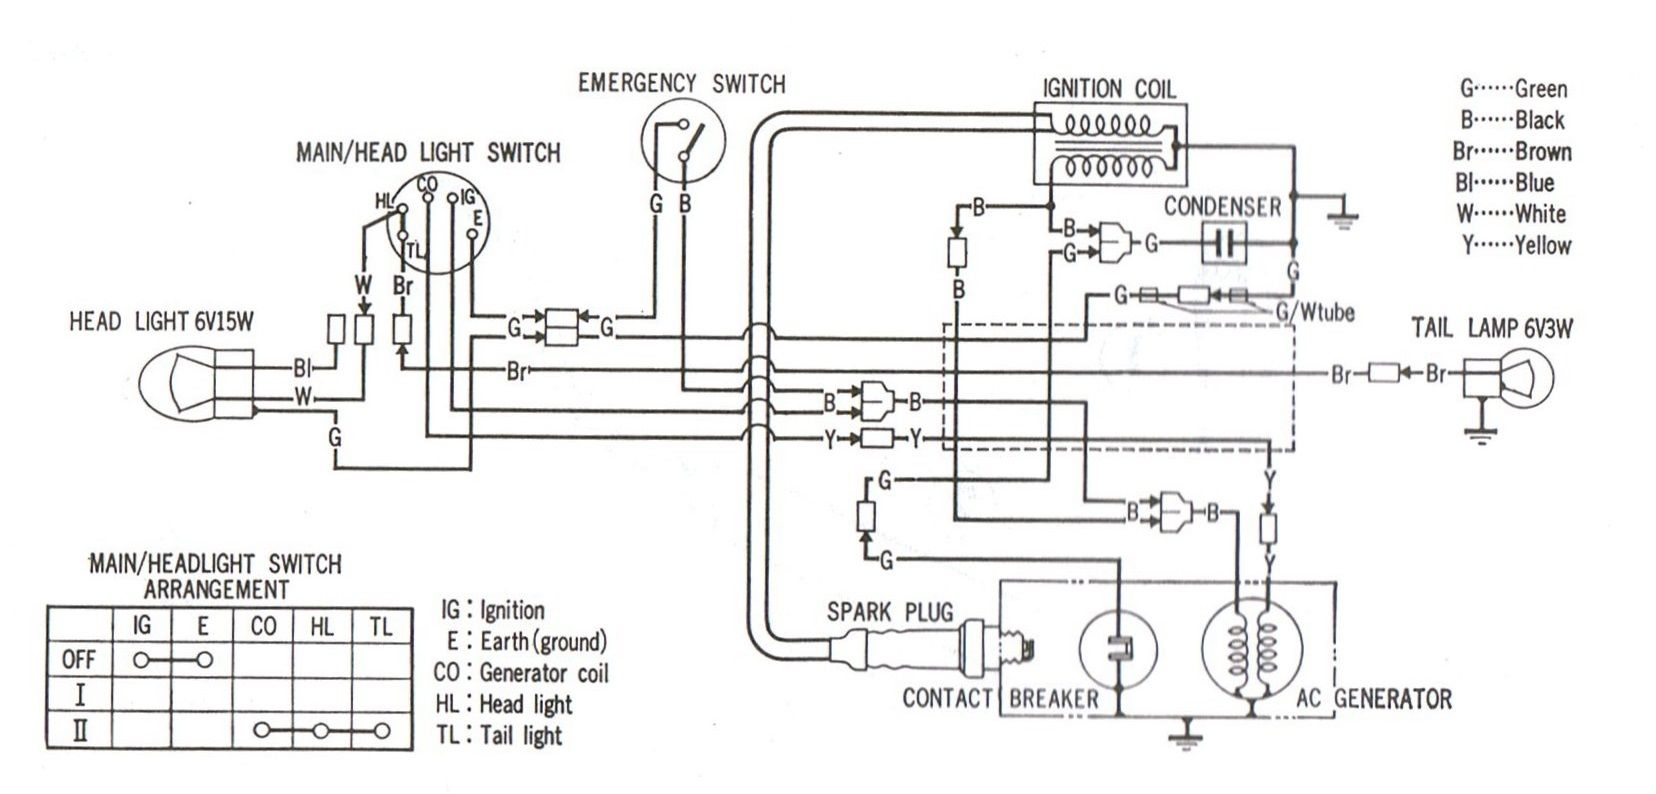 1981 Honda    C70    Passport    Wiring       Diagram         Wiring       Diagram    Database